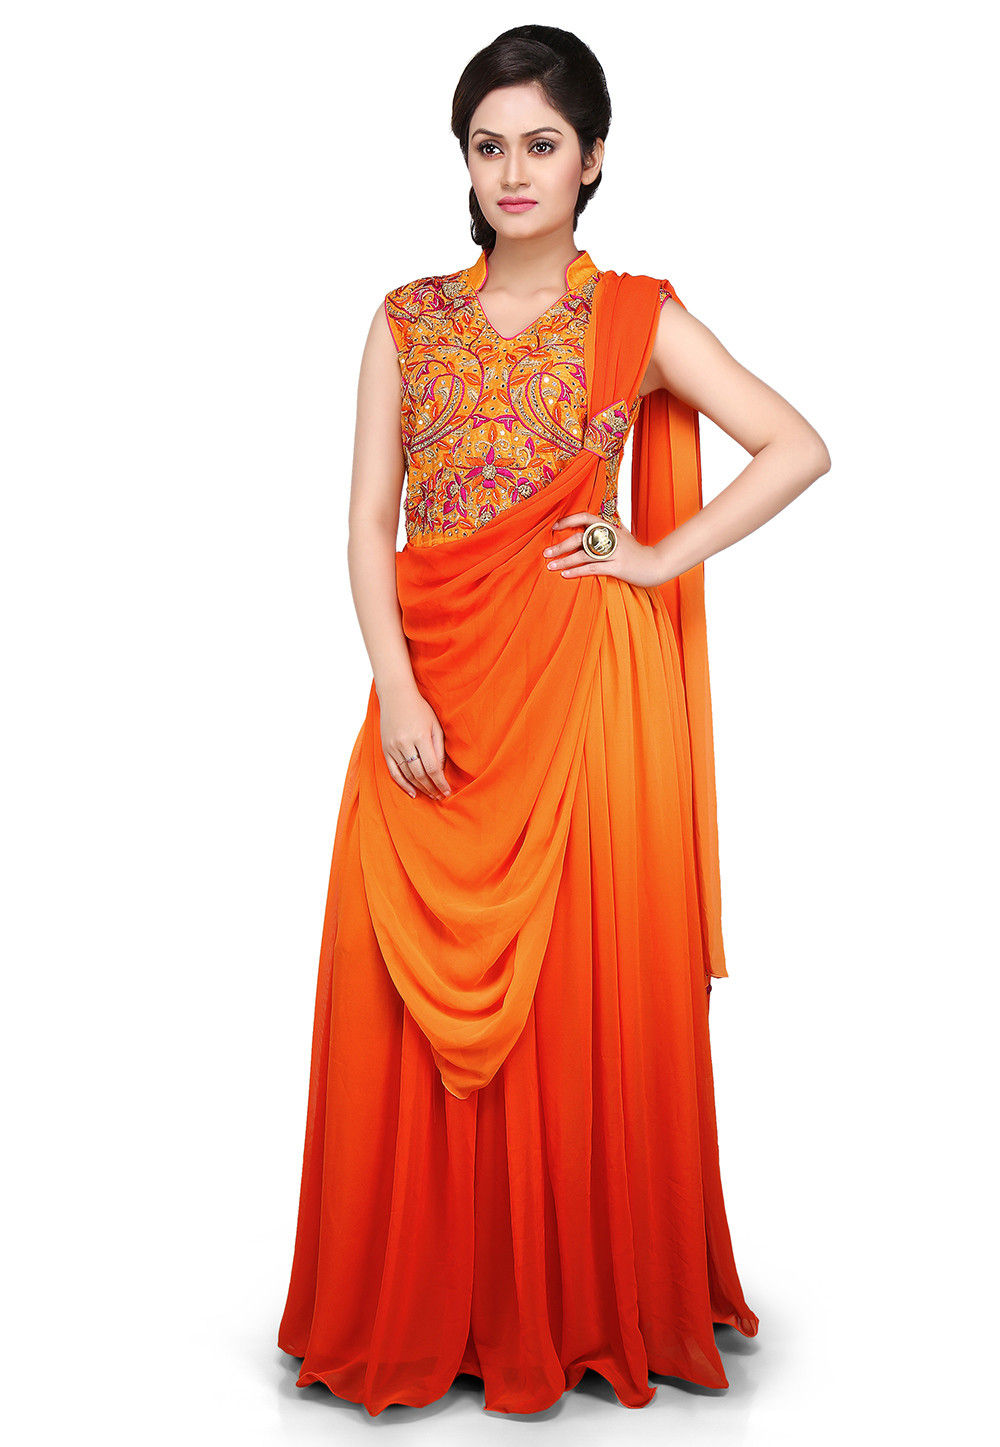 Hand Embroidered Georgette Saree Style Gown In Orange And Mustard Tjw284